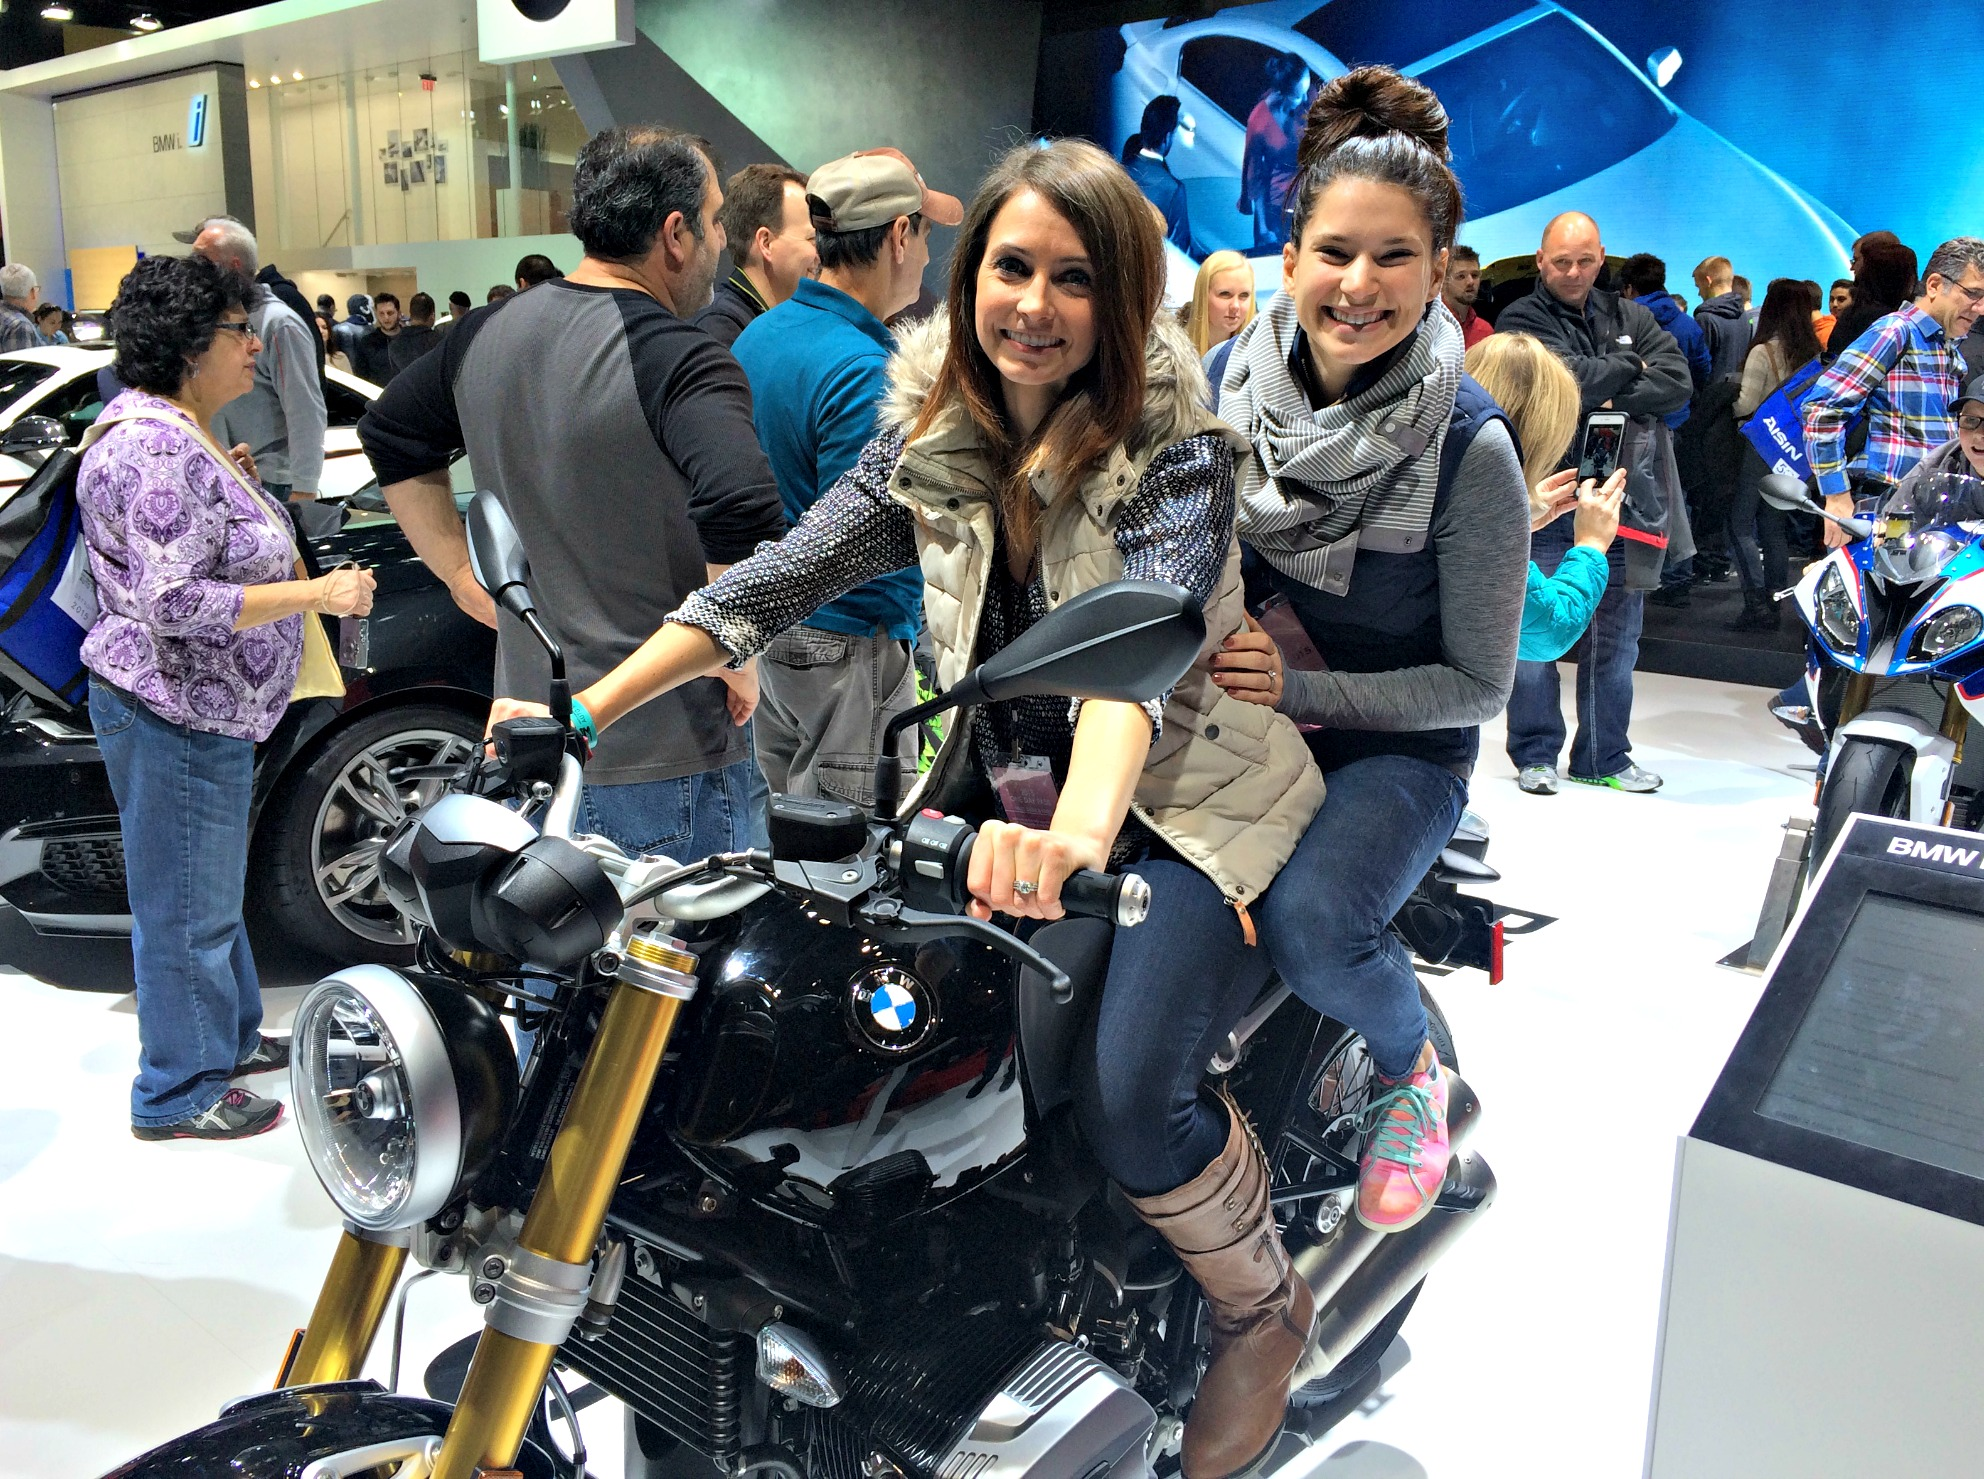 heather and alex on bmw bike